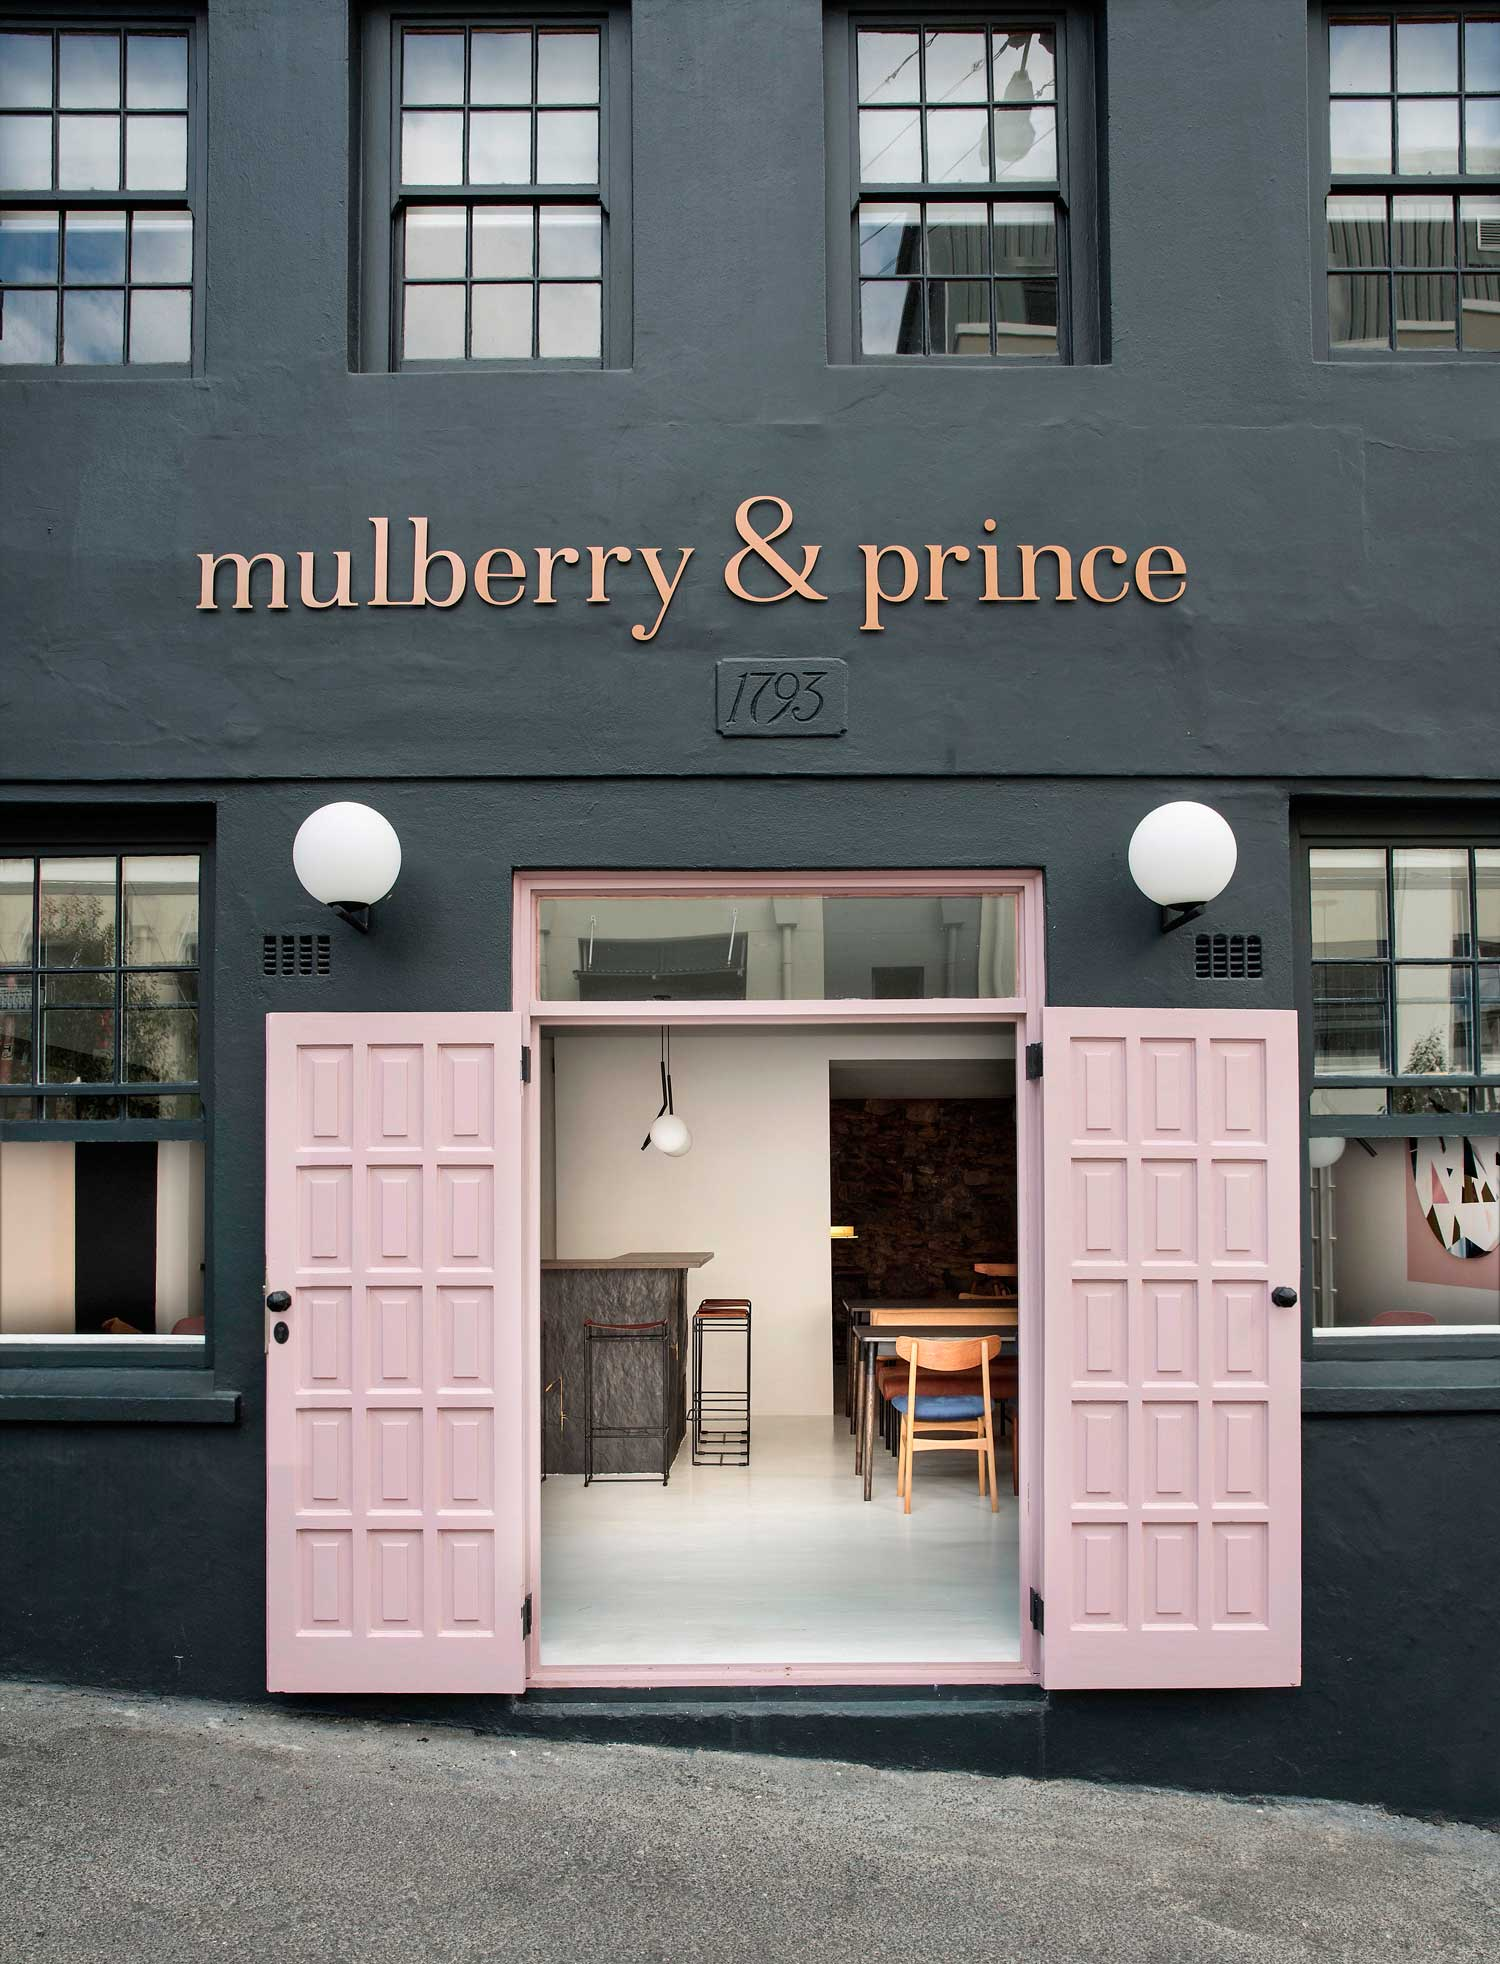 Mulberry U0026 Prince Restaurant In Cape Town By Atelier Interiors | Yellowtrace